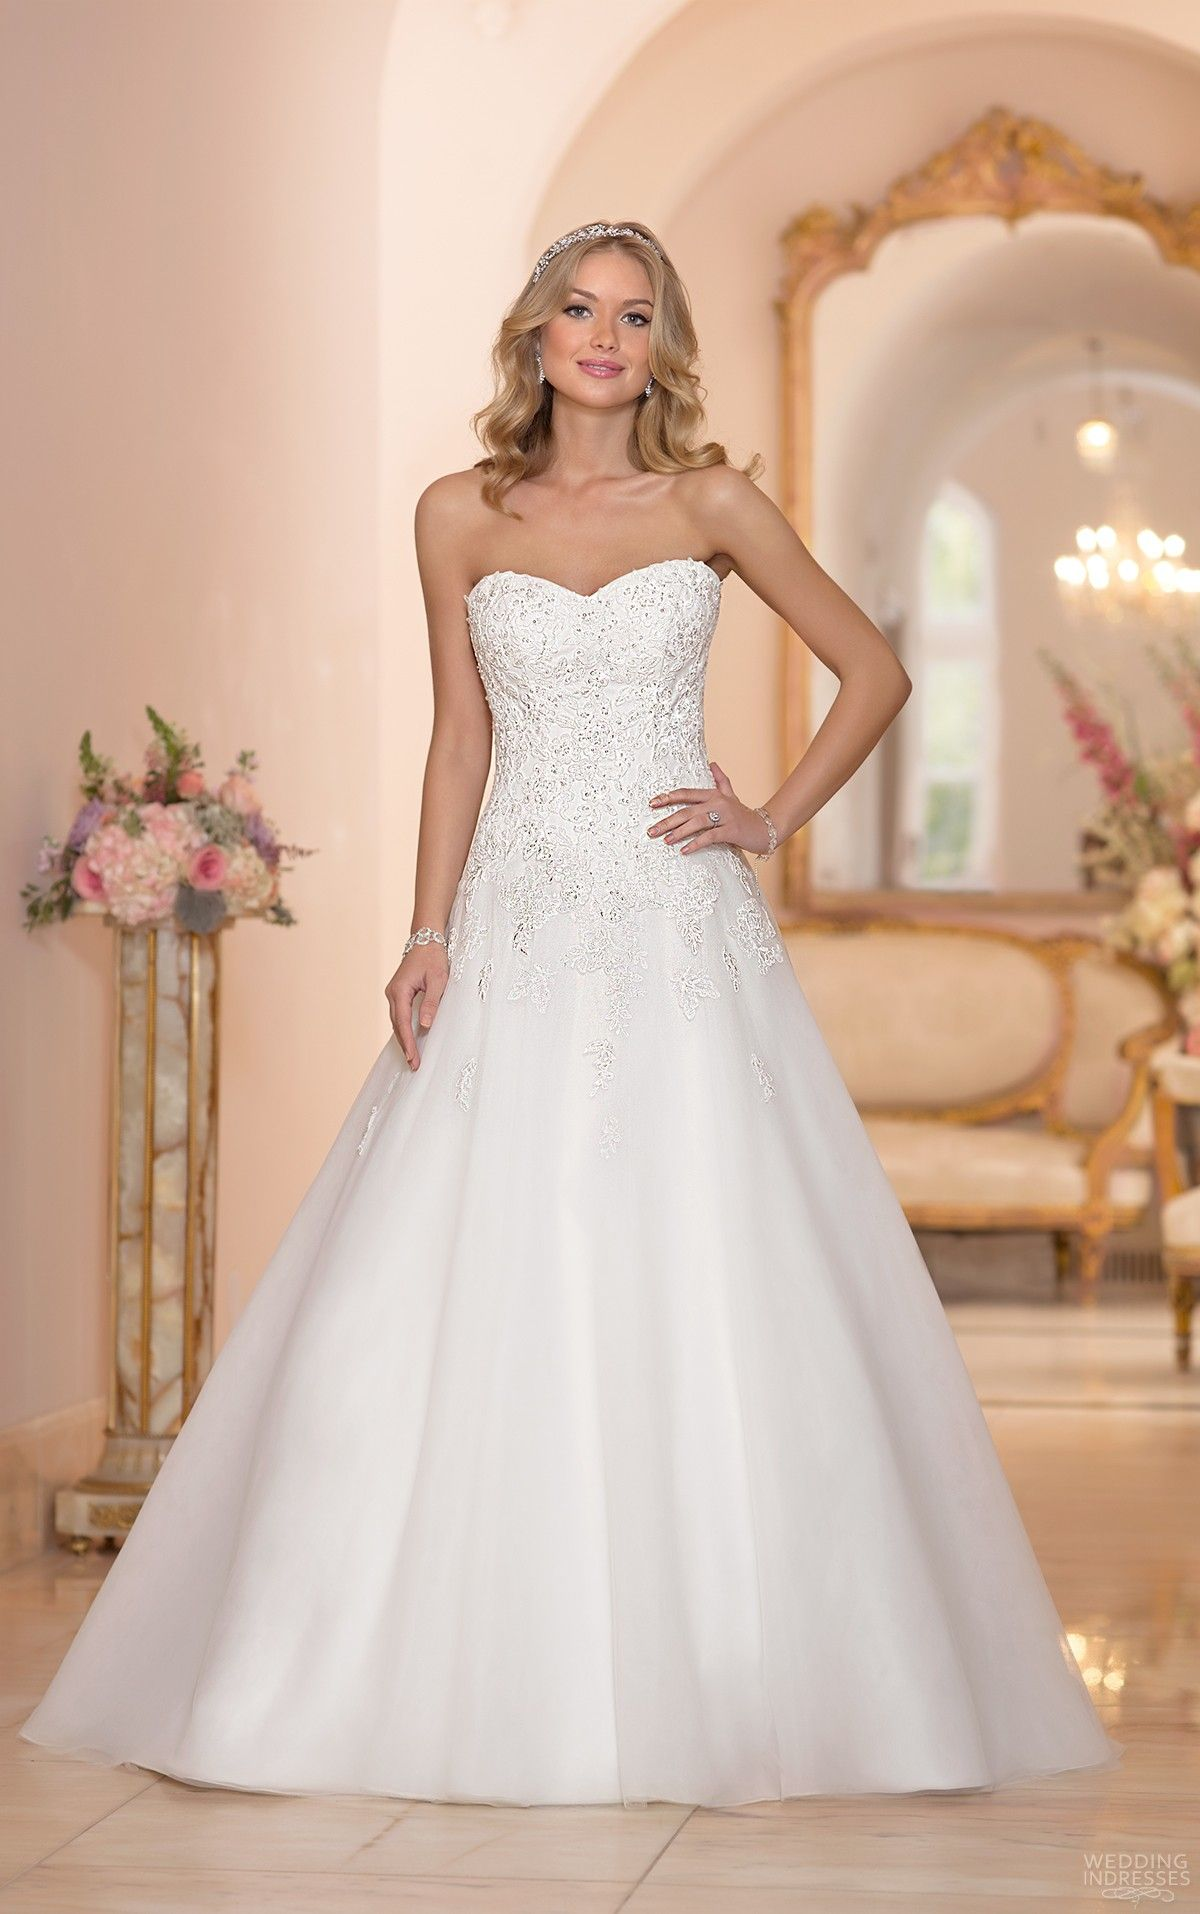 Lace A Line Sweetheart Wedding Dress Google Search